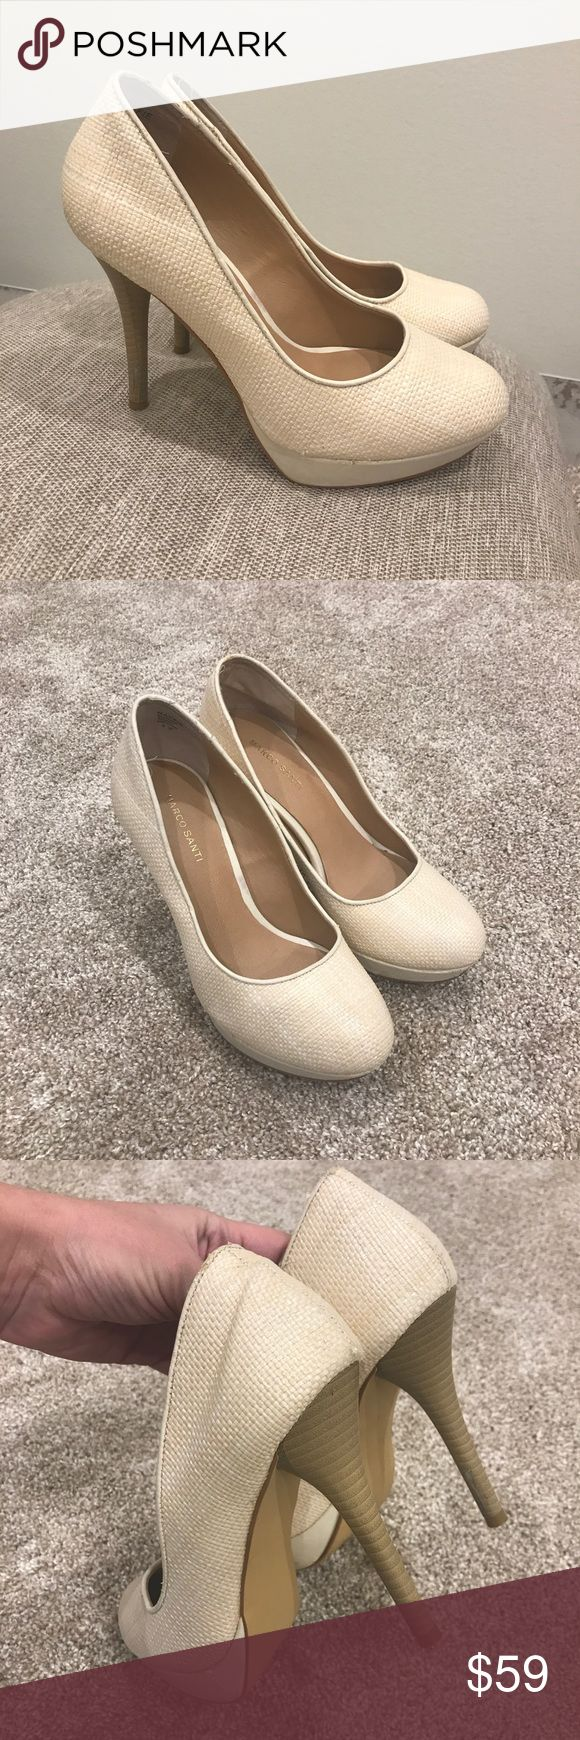 Marco Santi cream pumps high heels (4.5), comfy! These are my favorite comfy pumps, got small once I got pregnant 😭 true to size, maybe little bigger, around 8.5, worn but still look pretty. Wish I could make them 1 size bigger! Marco Santi Shoes Heels